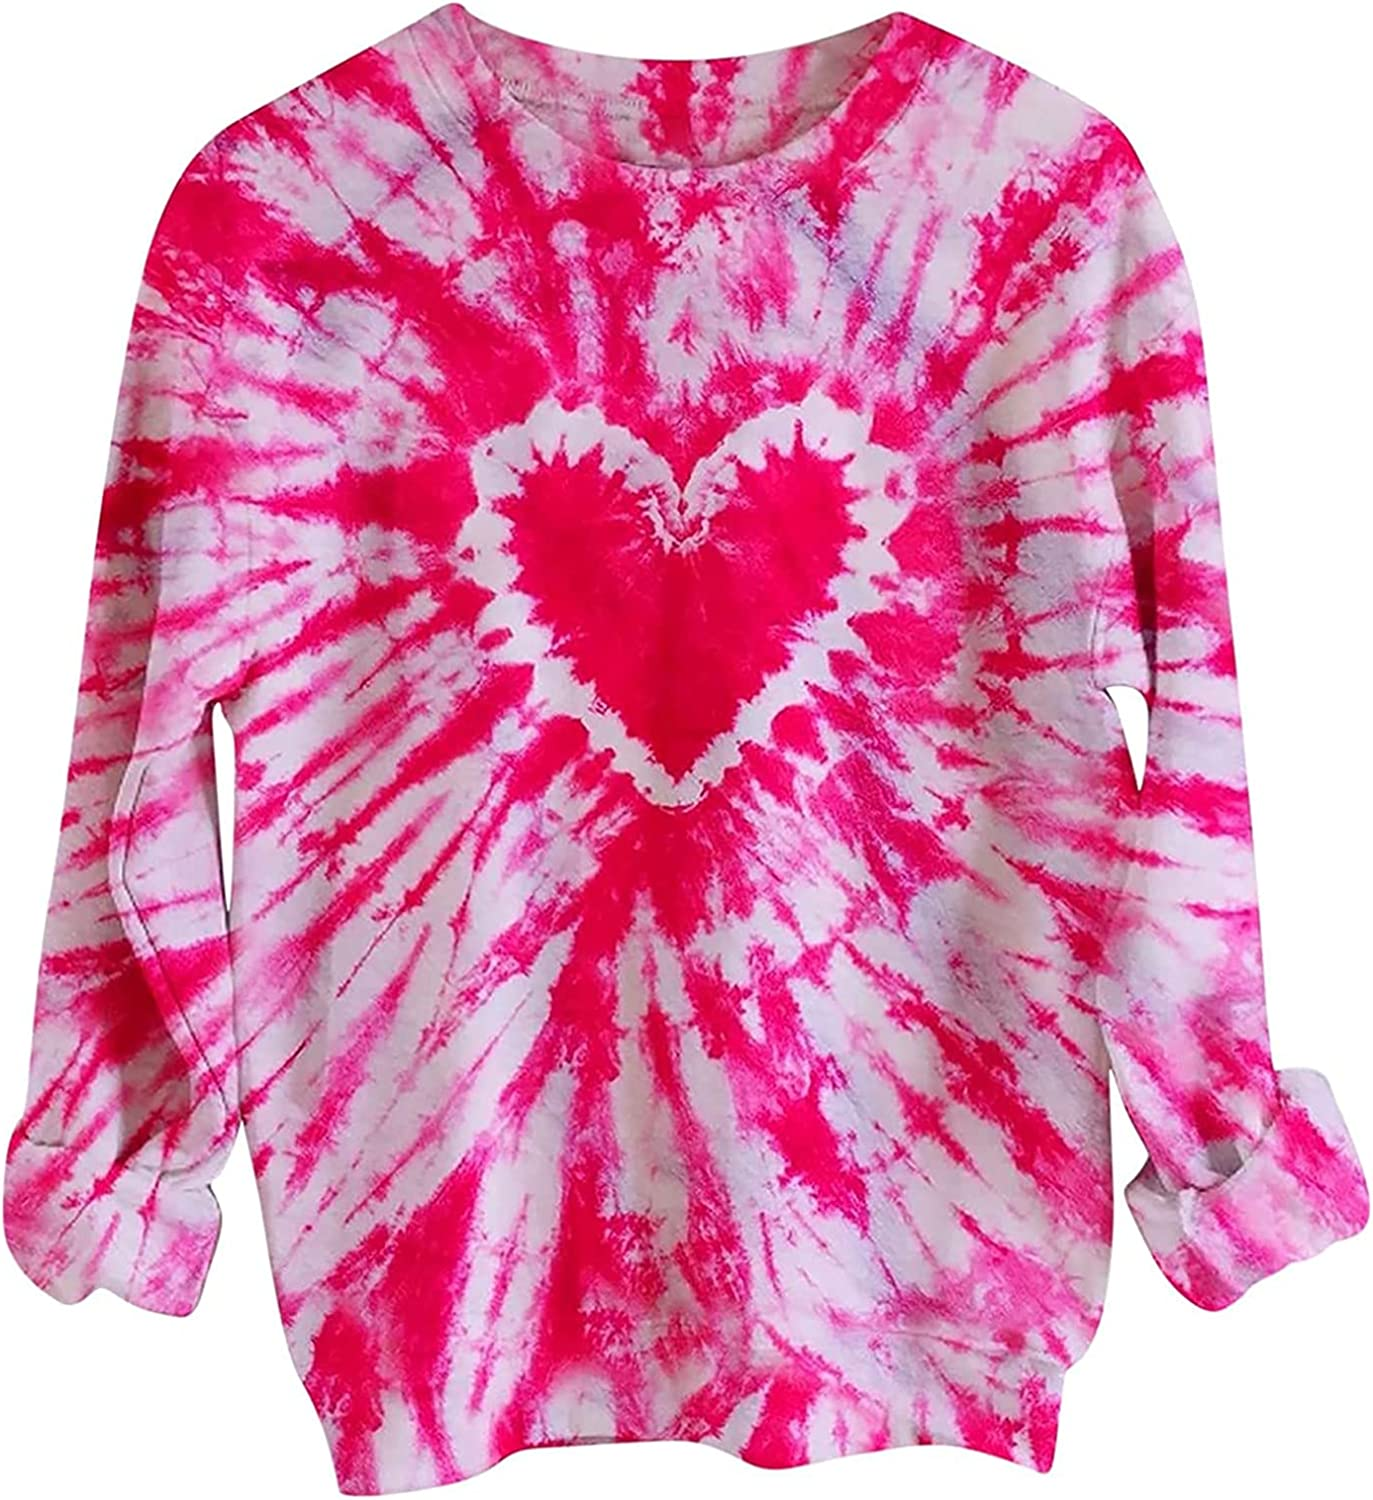 Women lowest price Colorful Printed Live Popular popular Sweater Long Casual Sleeve Shi Print